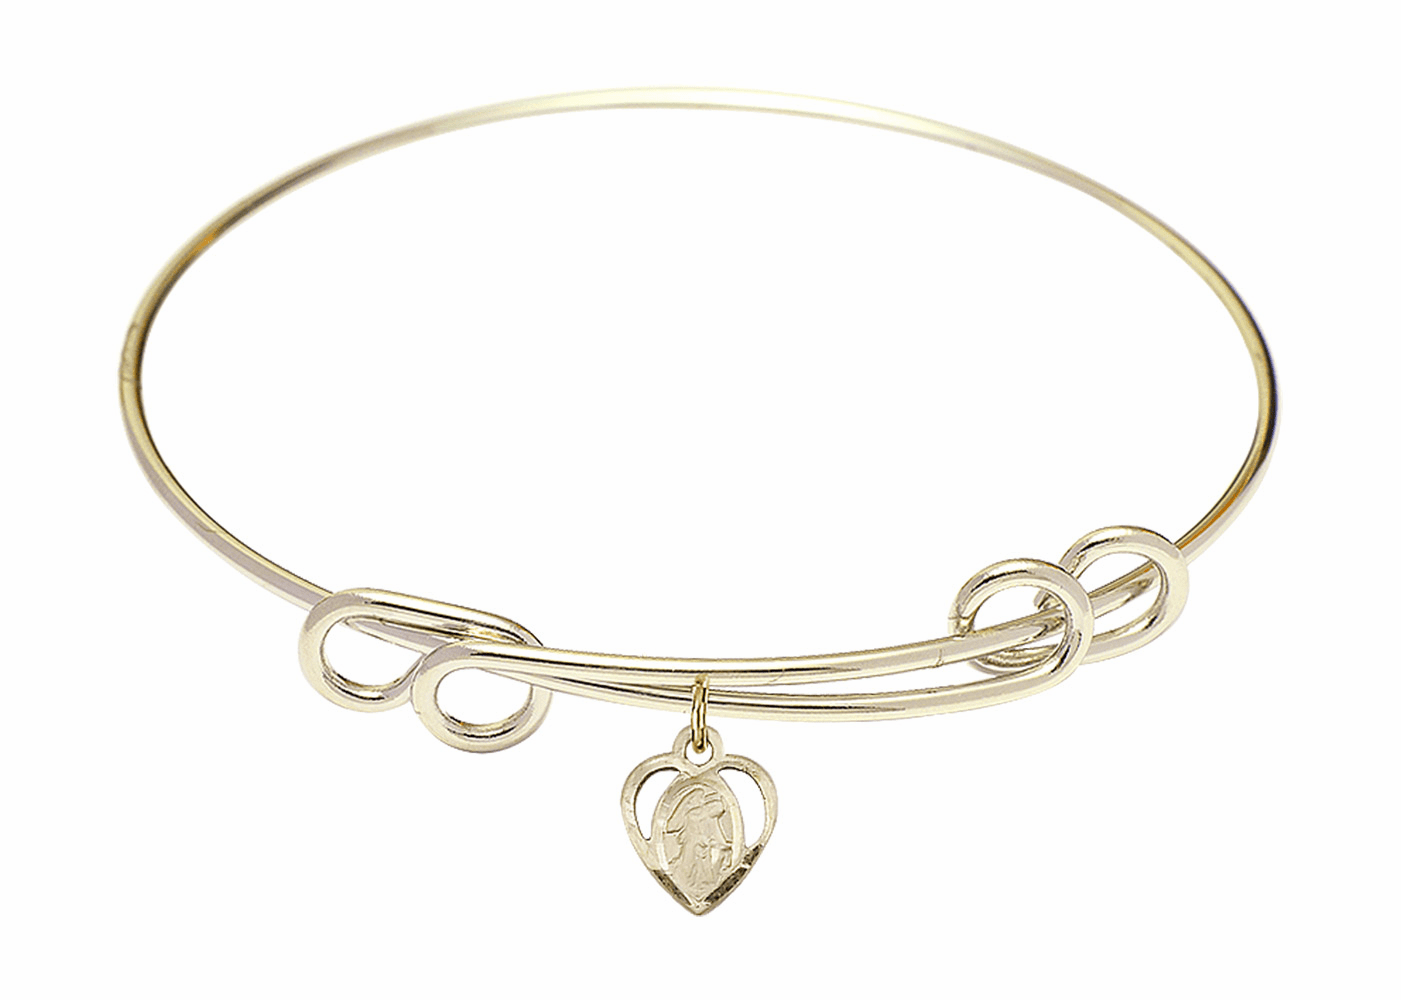 Round Double Loop Bangle Bracelet w/Guardian Angel Heart Charm by Bliss Mfg